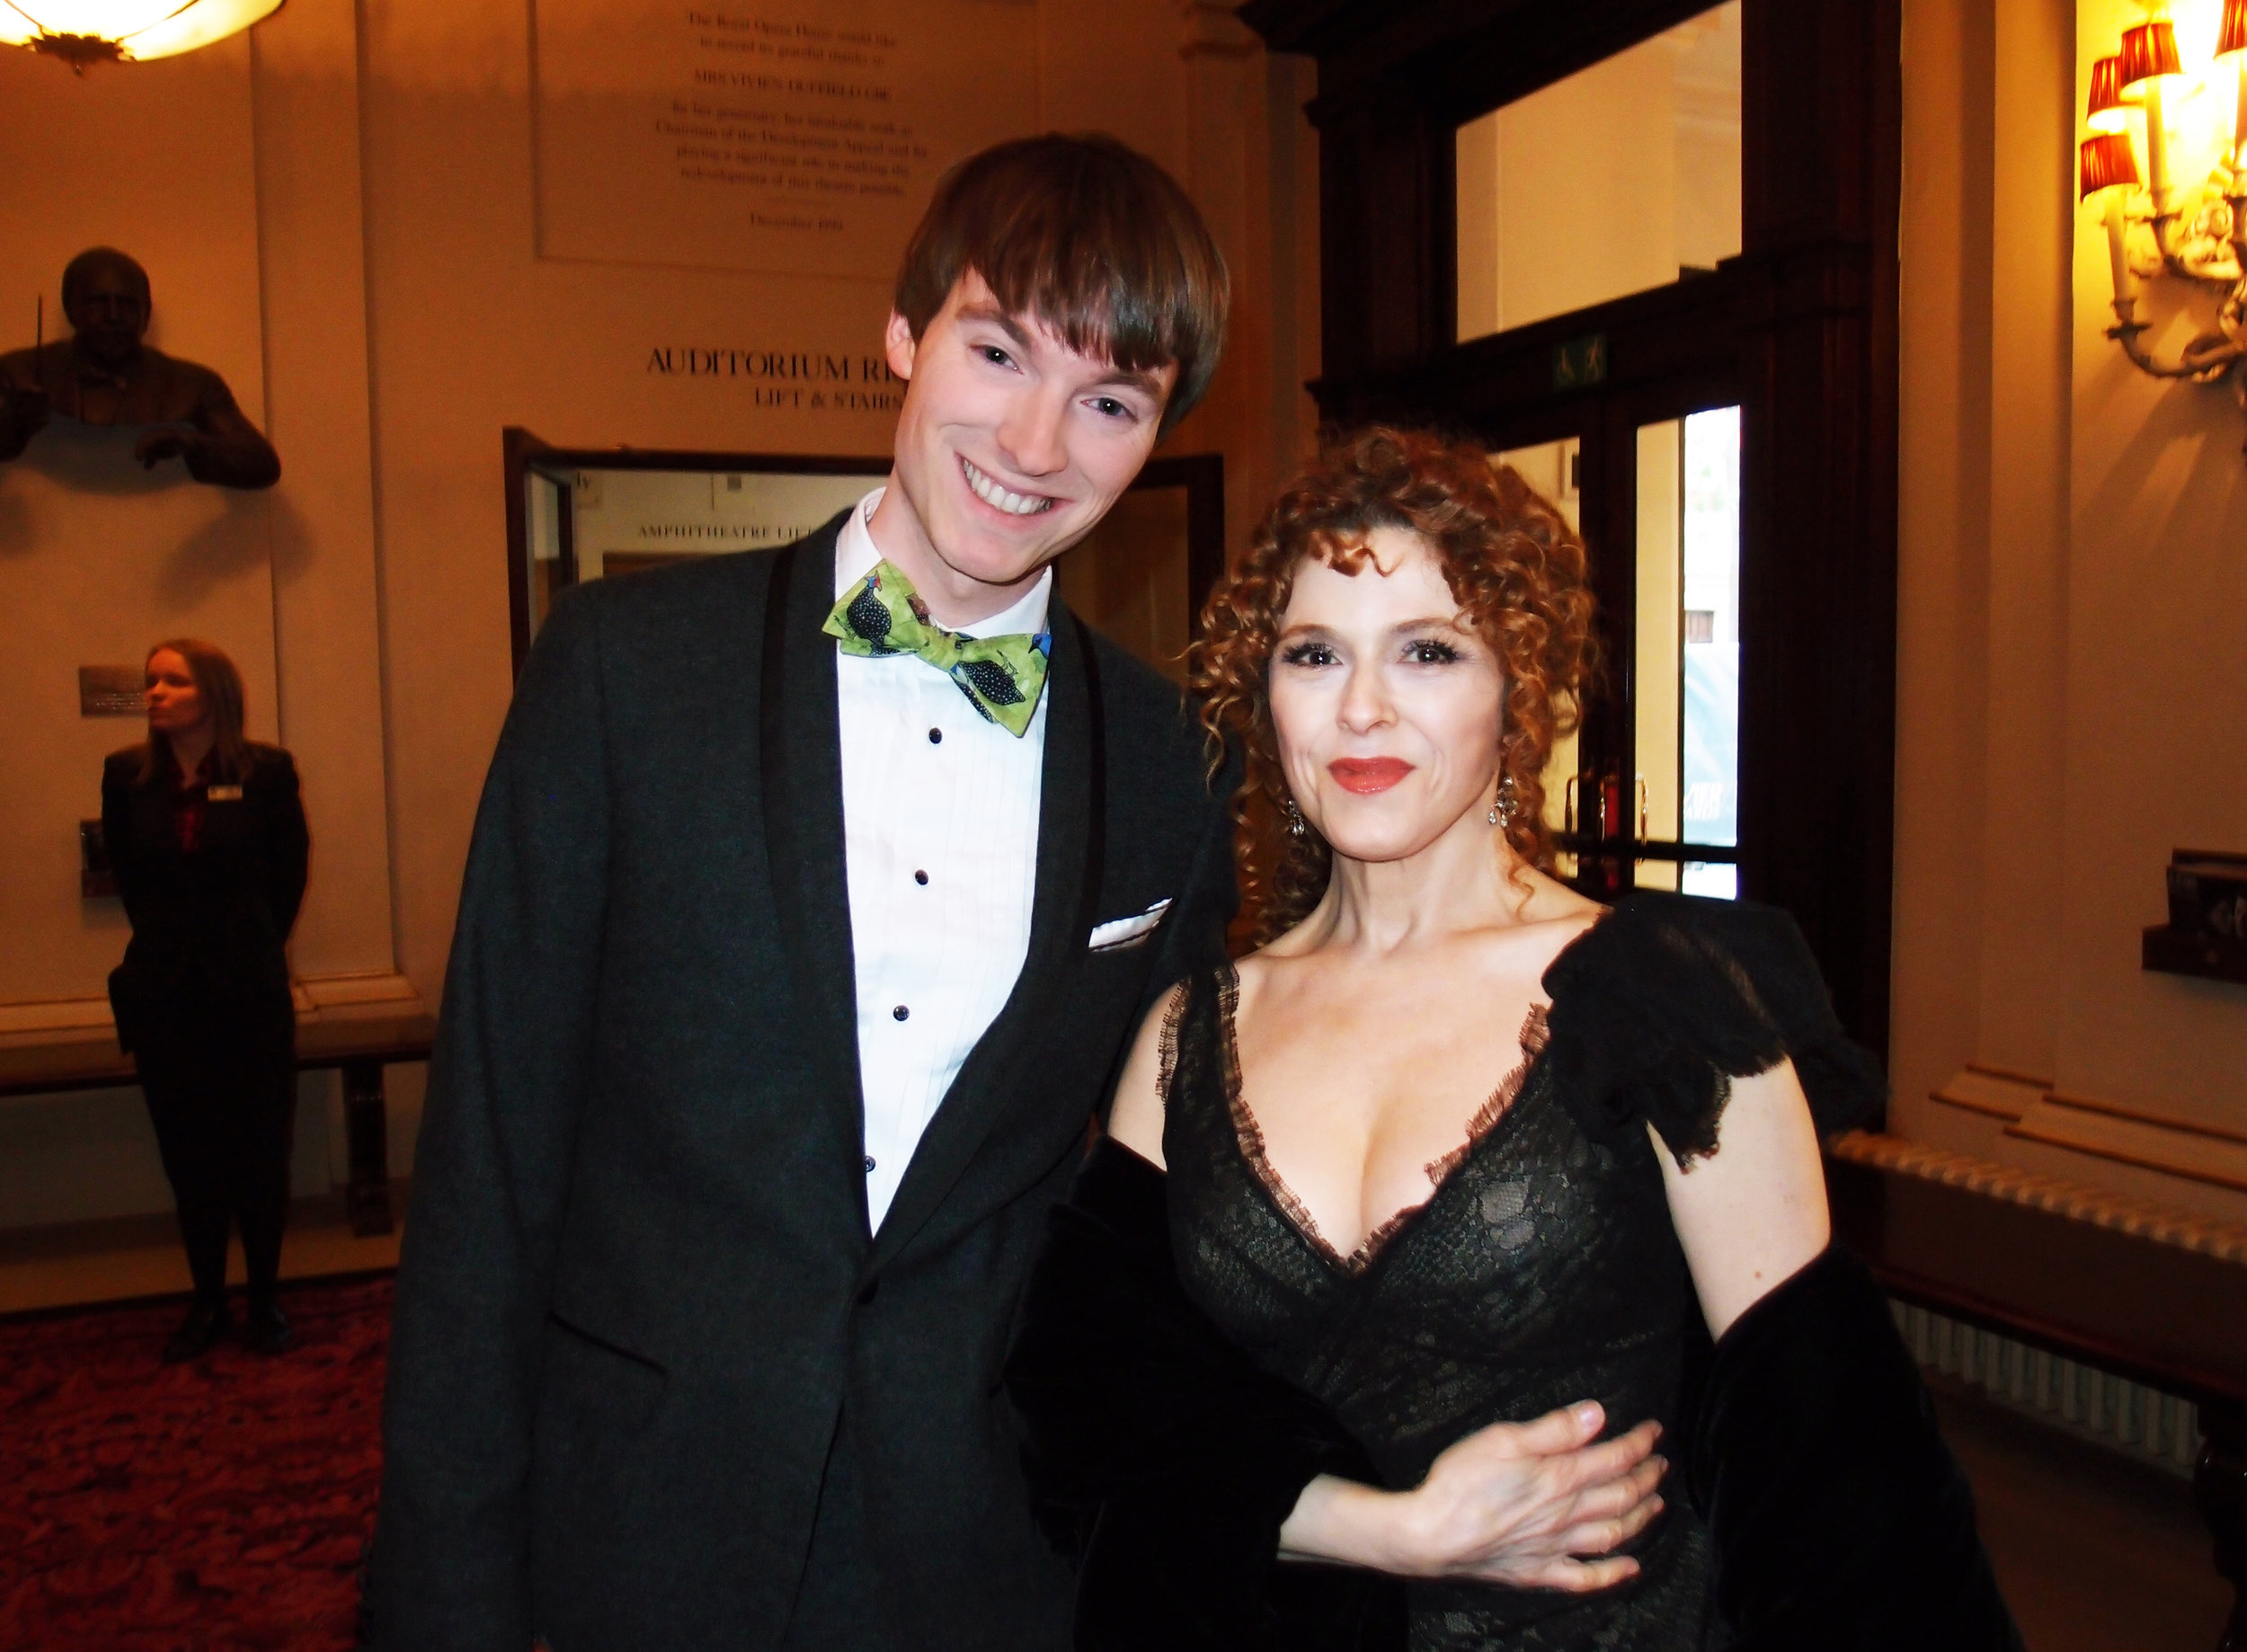 Richard Brownlie-Marshall & Bernadette Peters